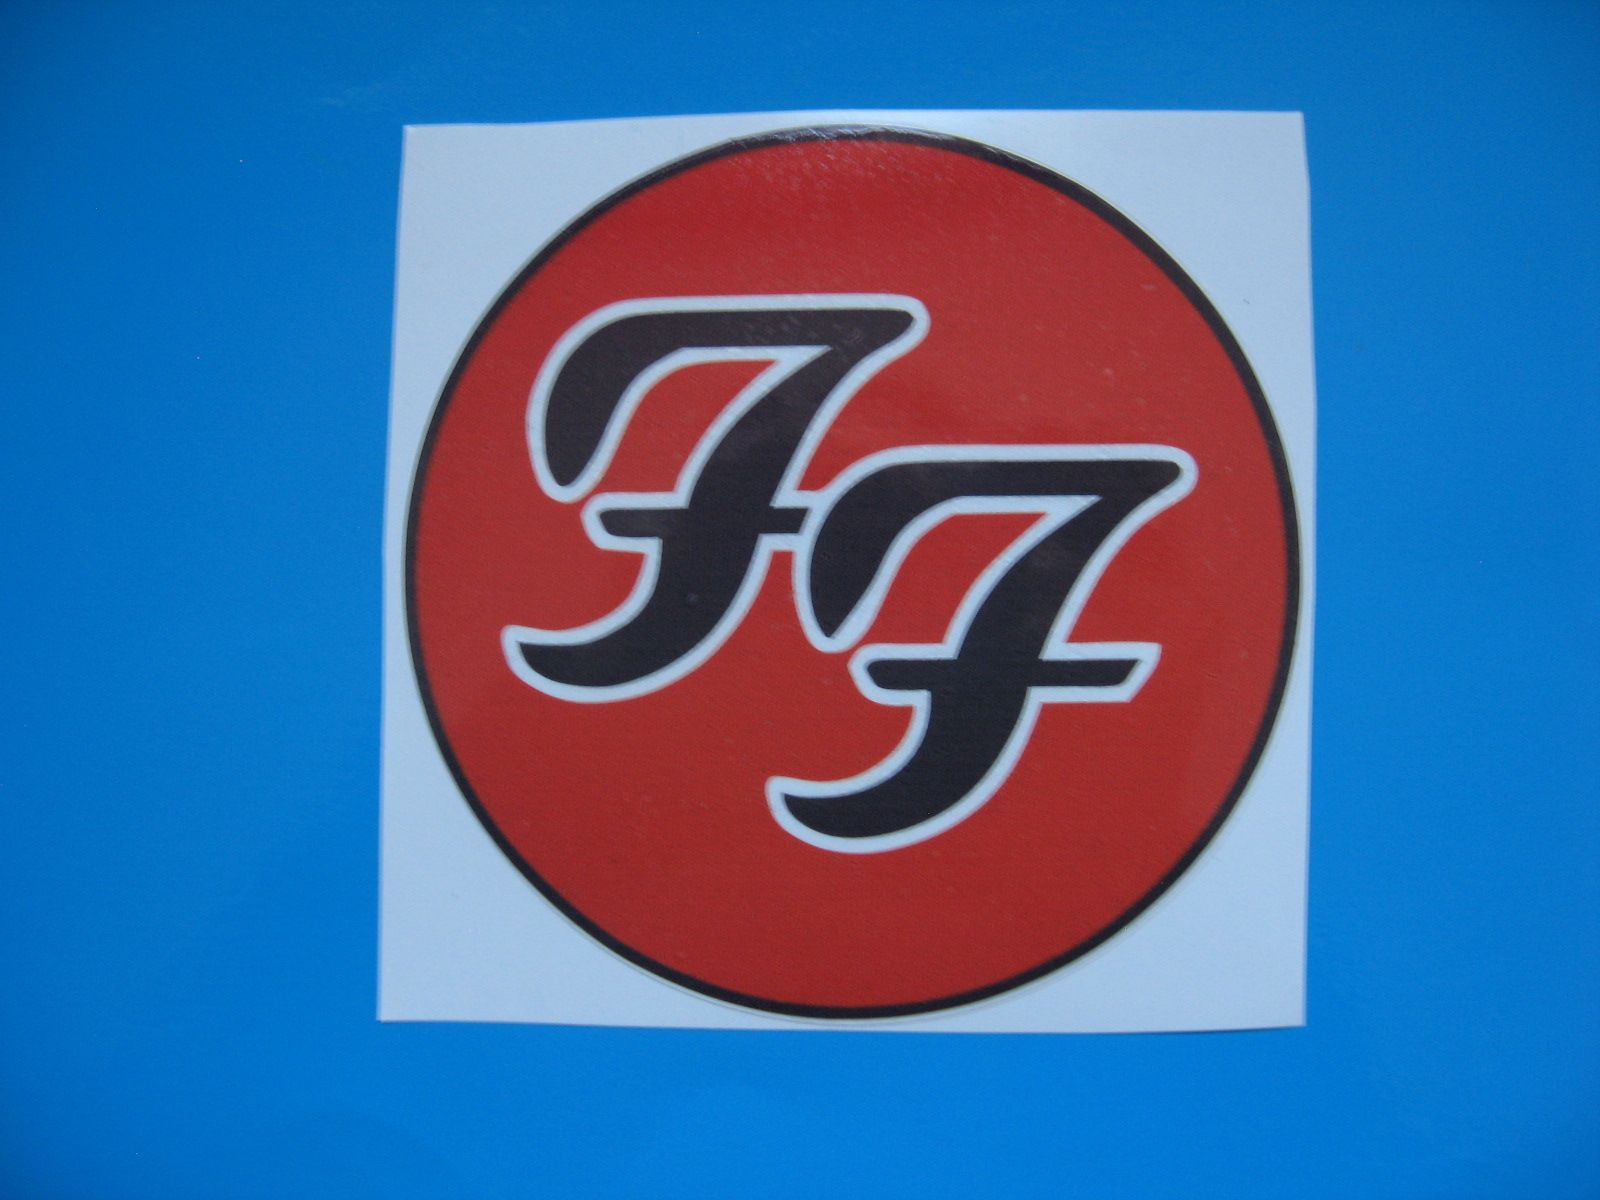 Foo Fighters Car Bumper Sticker Stickerbomb Bomb Decal Electric